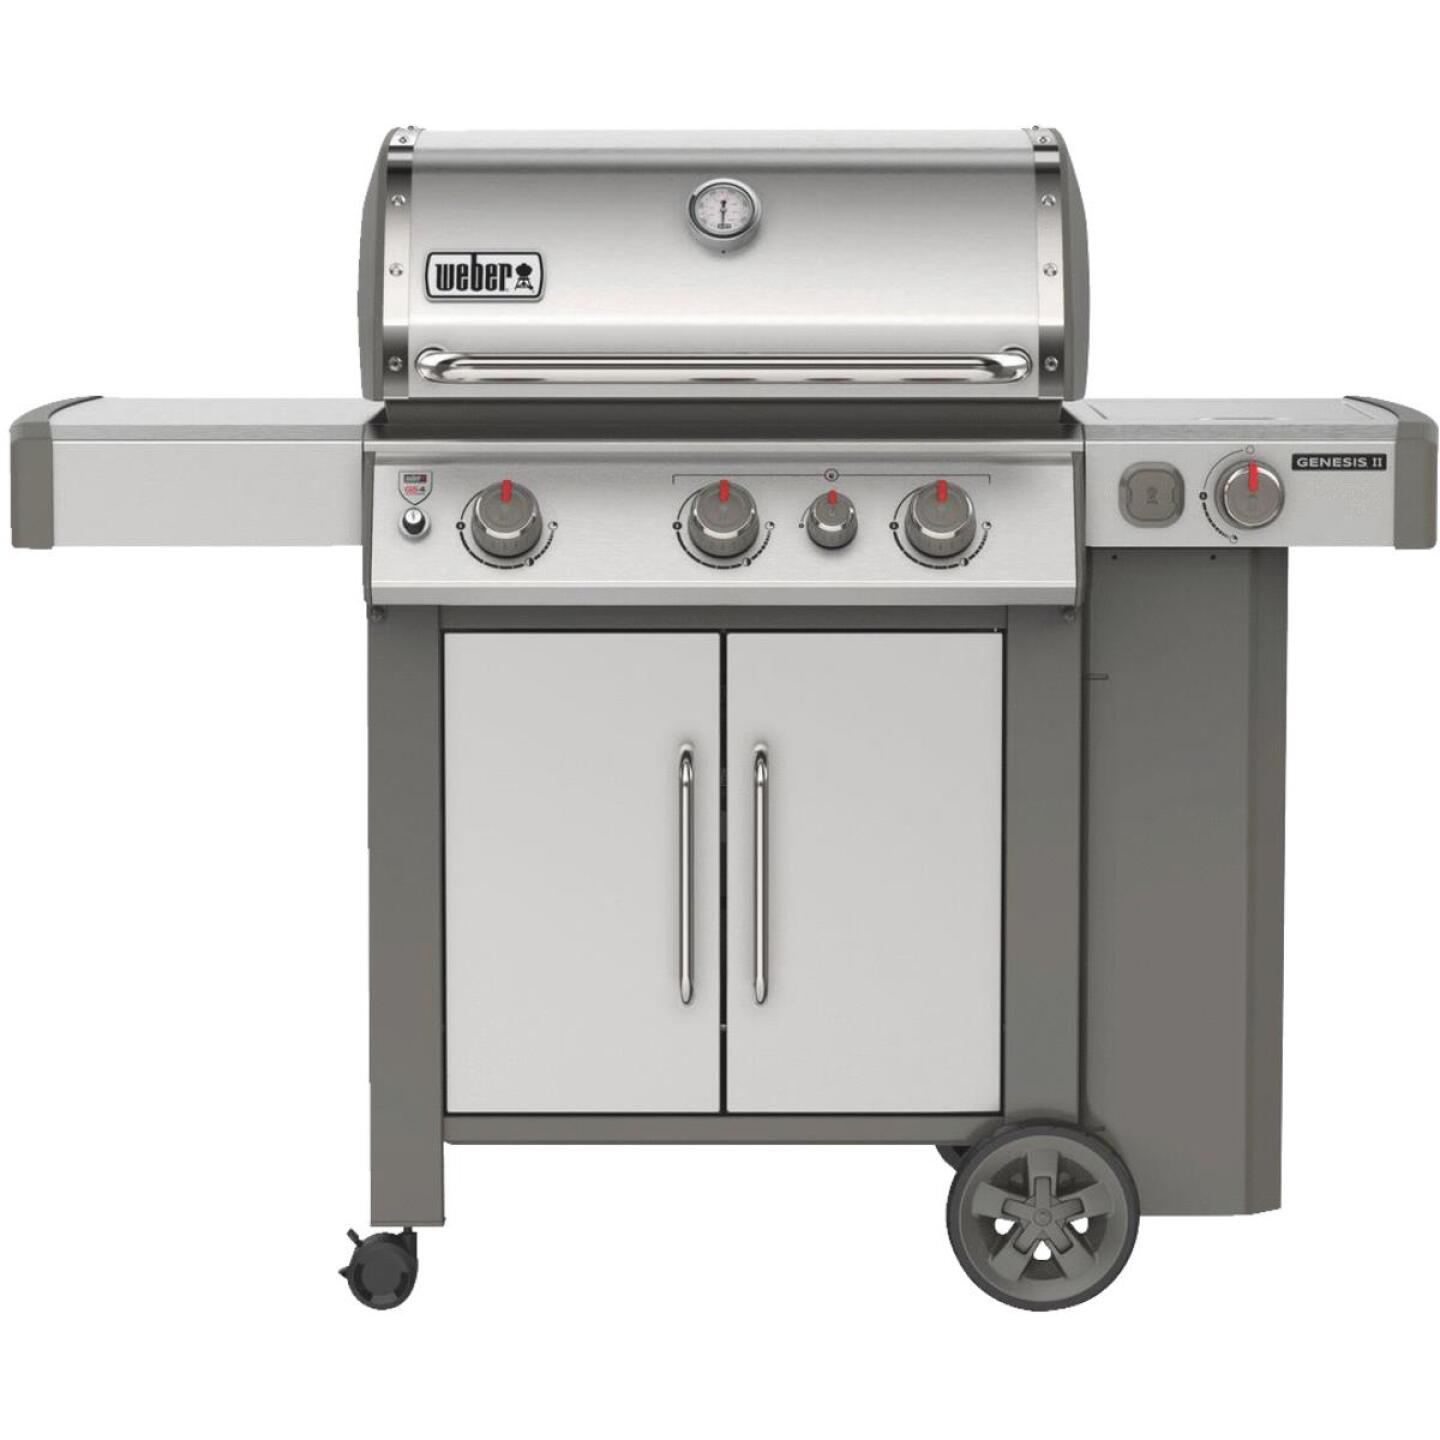 Weber Genesis II S-335 3-Burner Stainless Steel 39,000 BTU LP Gas Grill with 12,000 BTU Side -Burner Image 1